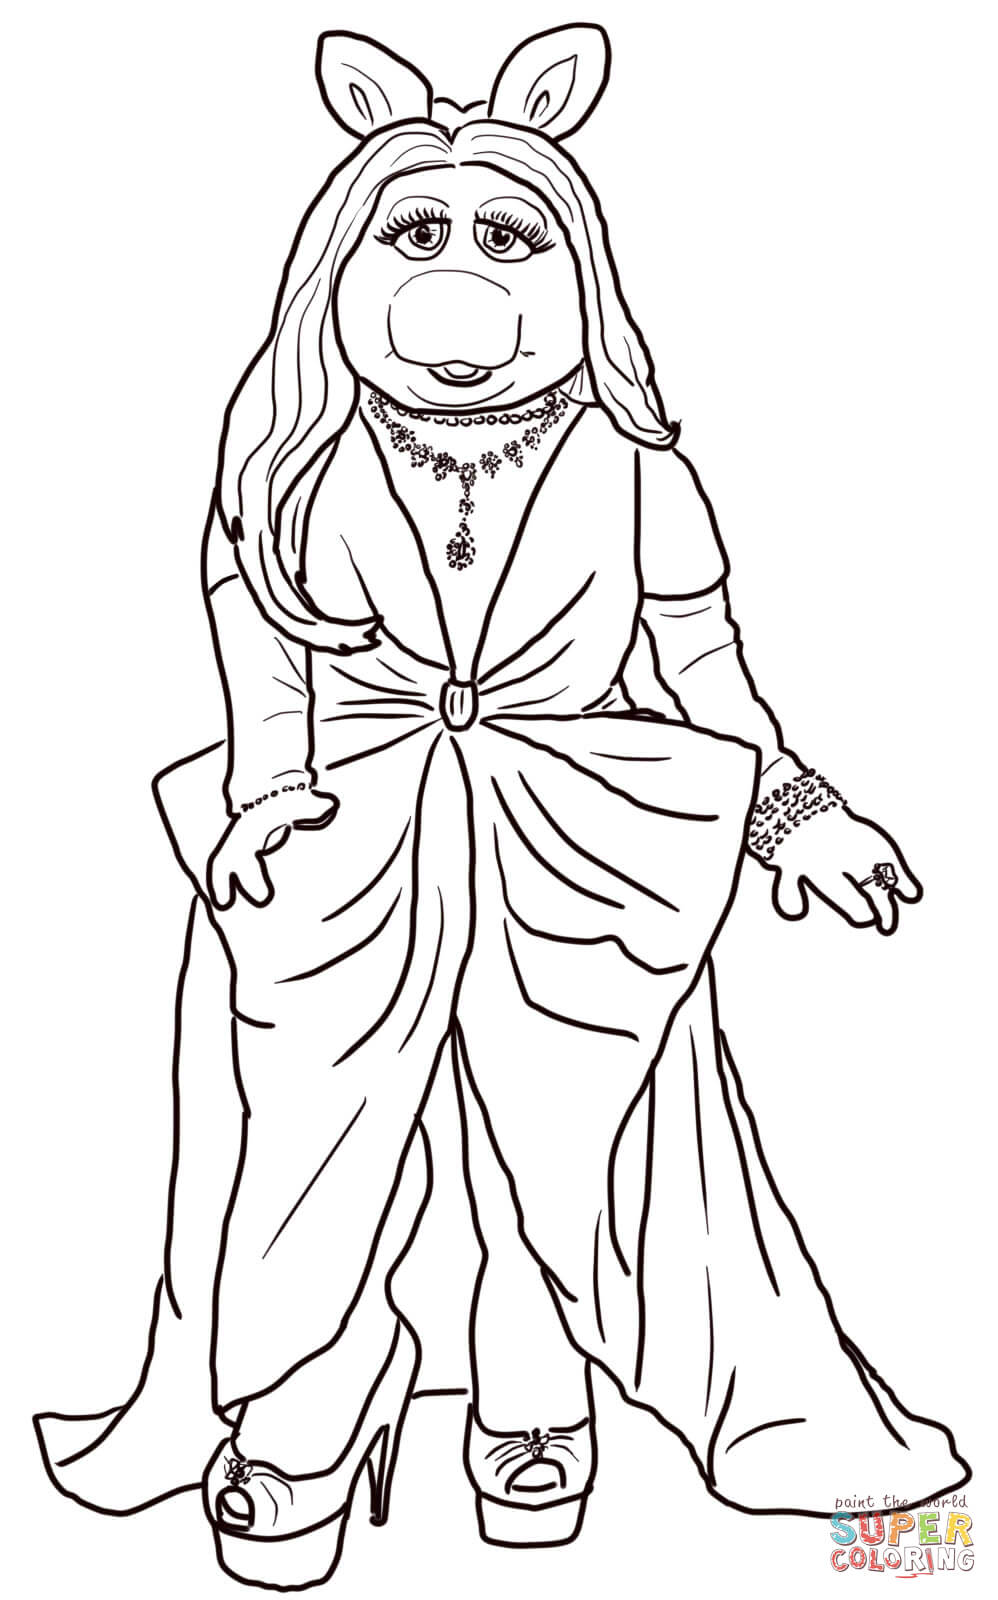 Coloring Drawing And Coloring Contest Coloring Pages